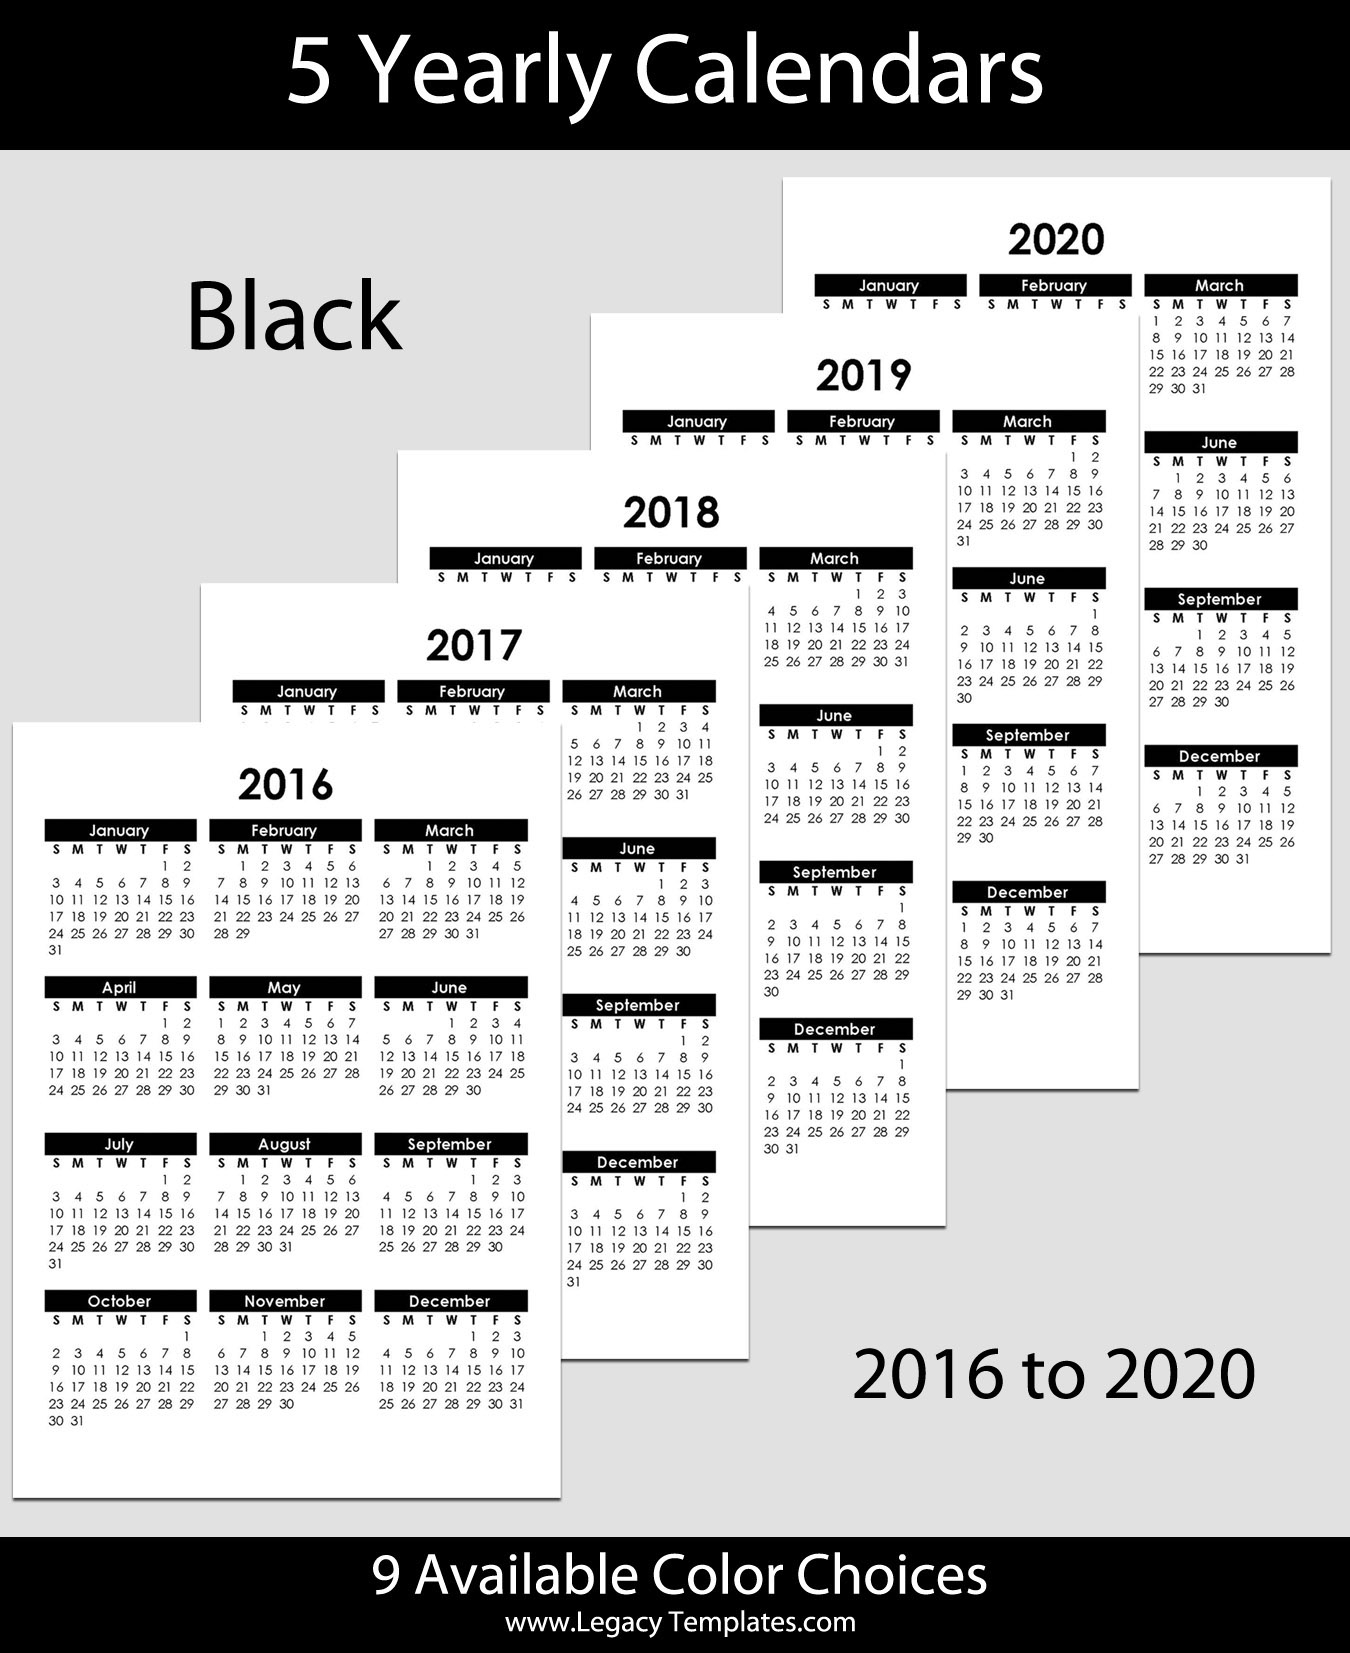 2016 To 2020 Yearly Calendar A5 Legacy Templates